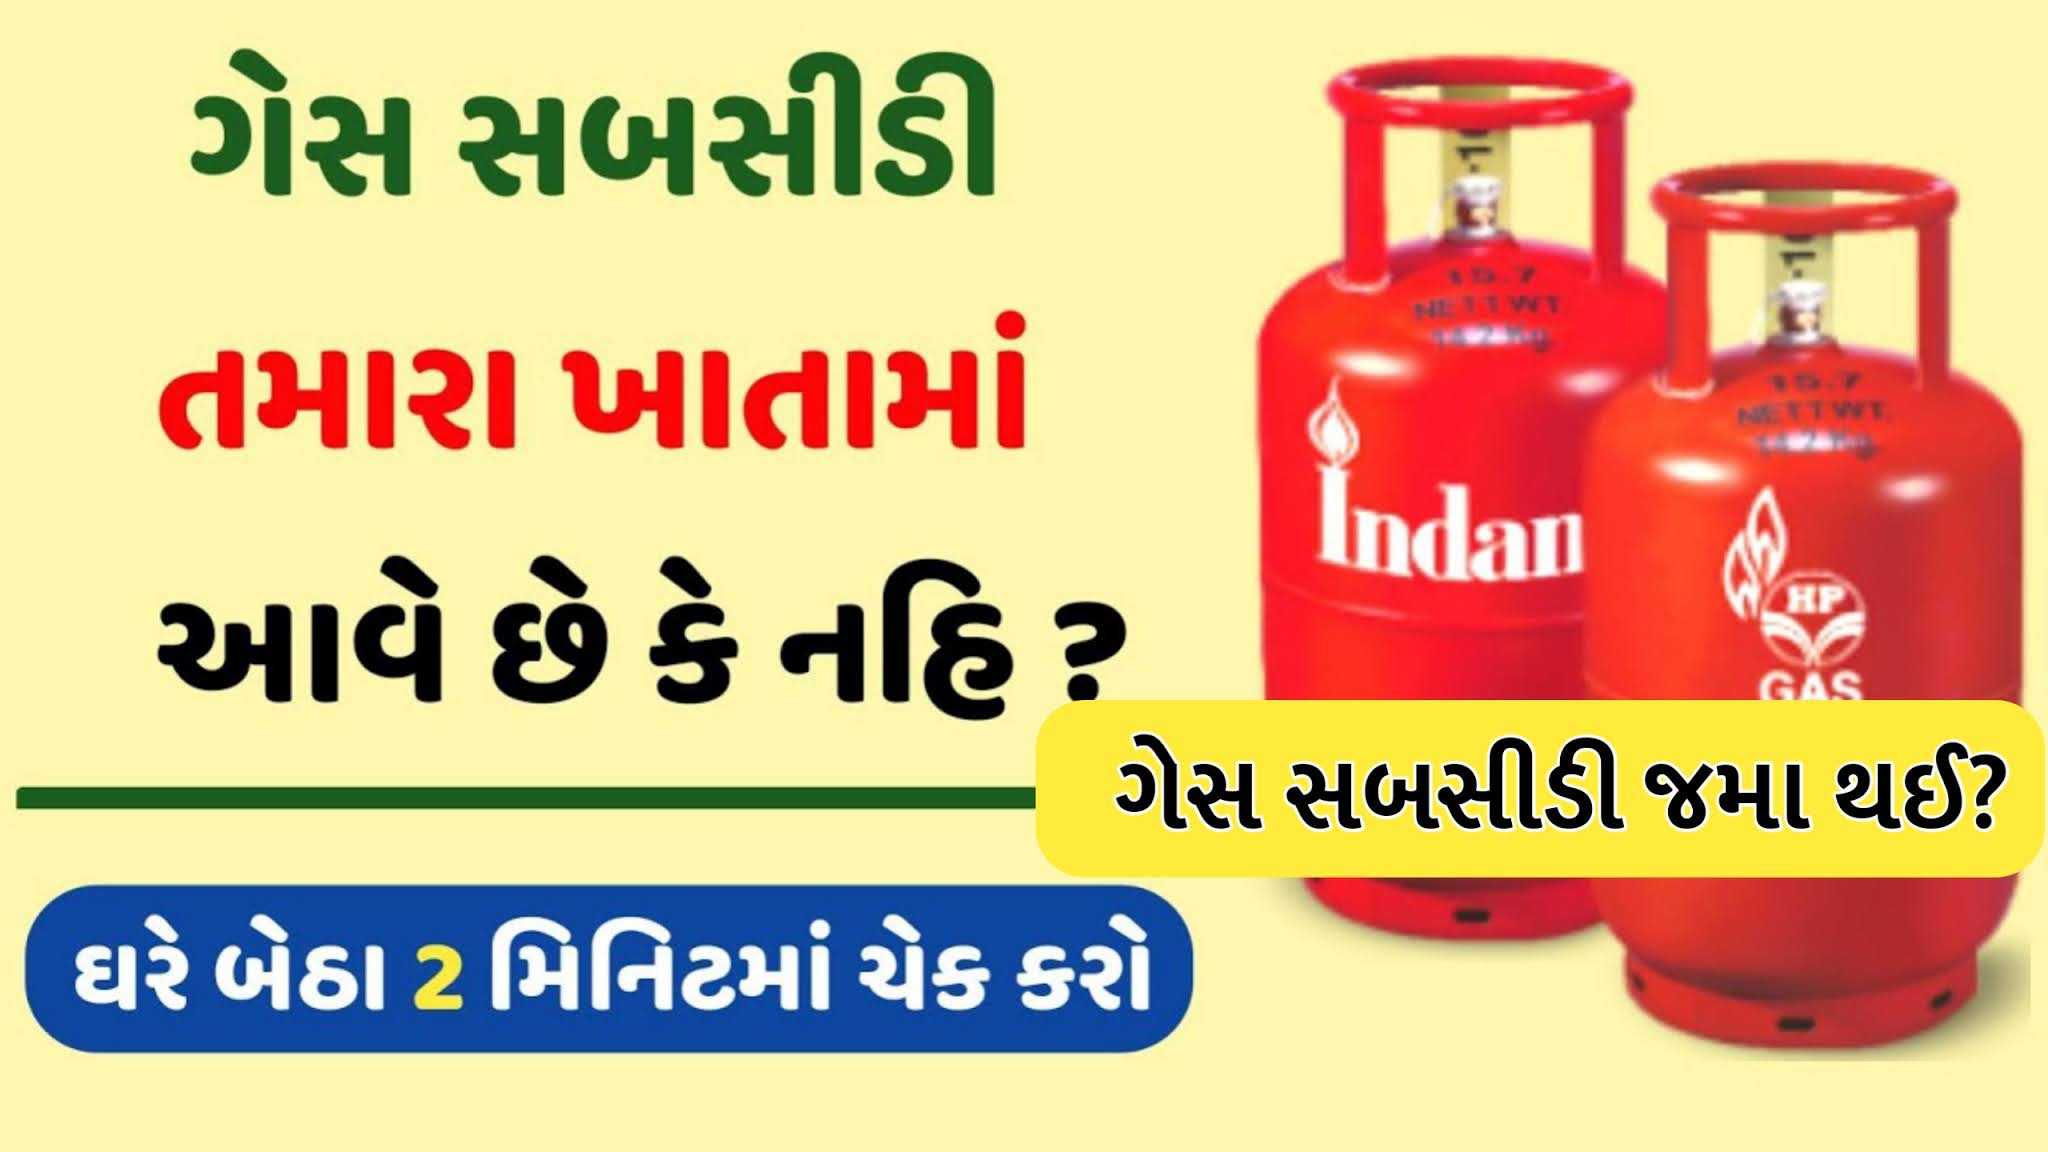 How To check Online Your Gas Subsidy Bharat Gas, HP Gas, Indane Gas [Mylpg.in]